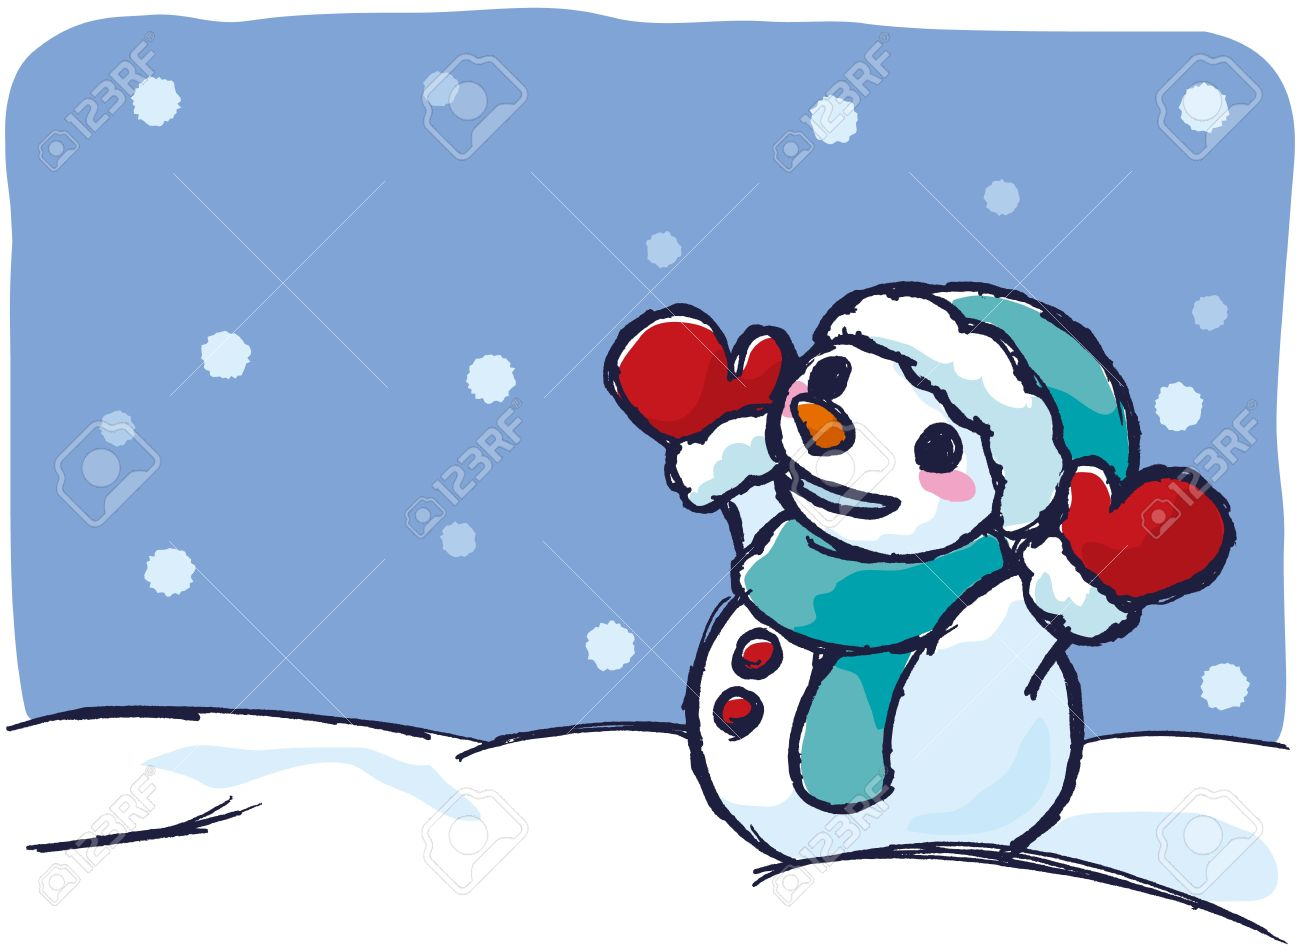 Free download best on. Blizzard clipart snow day